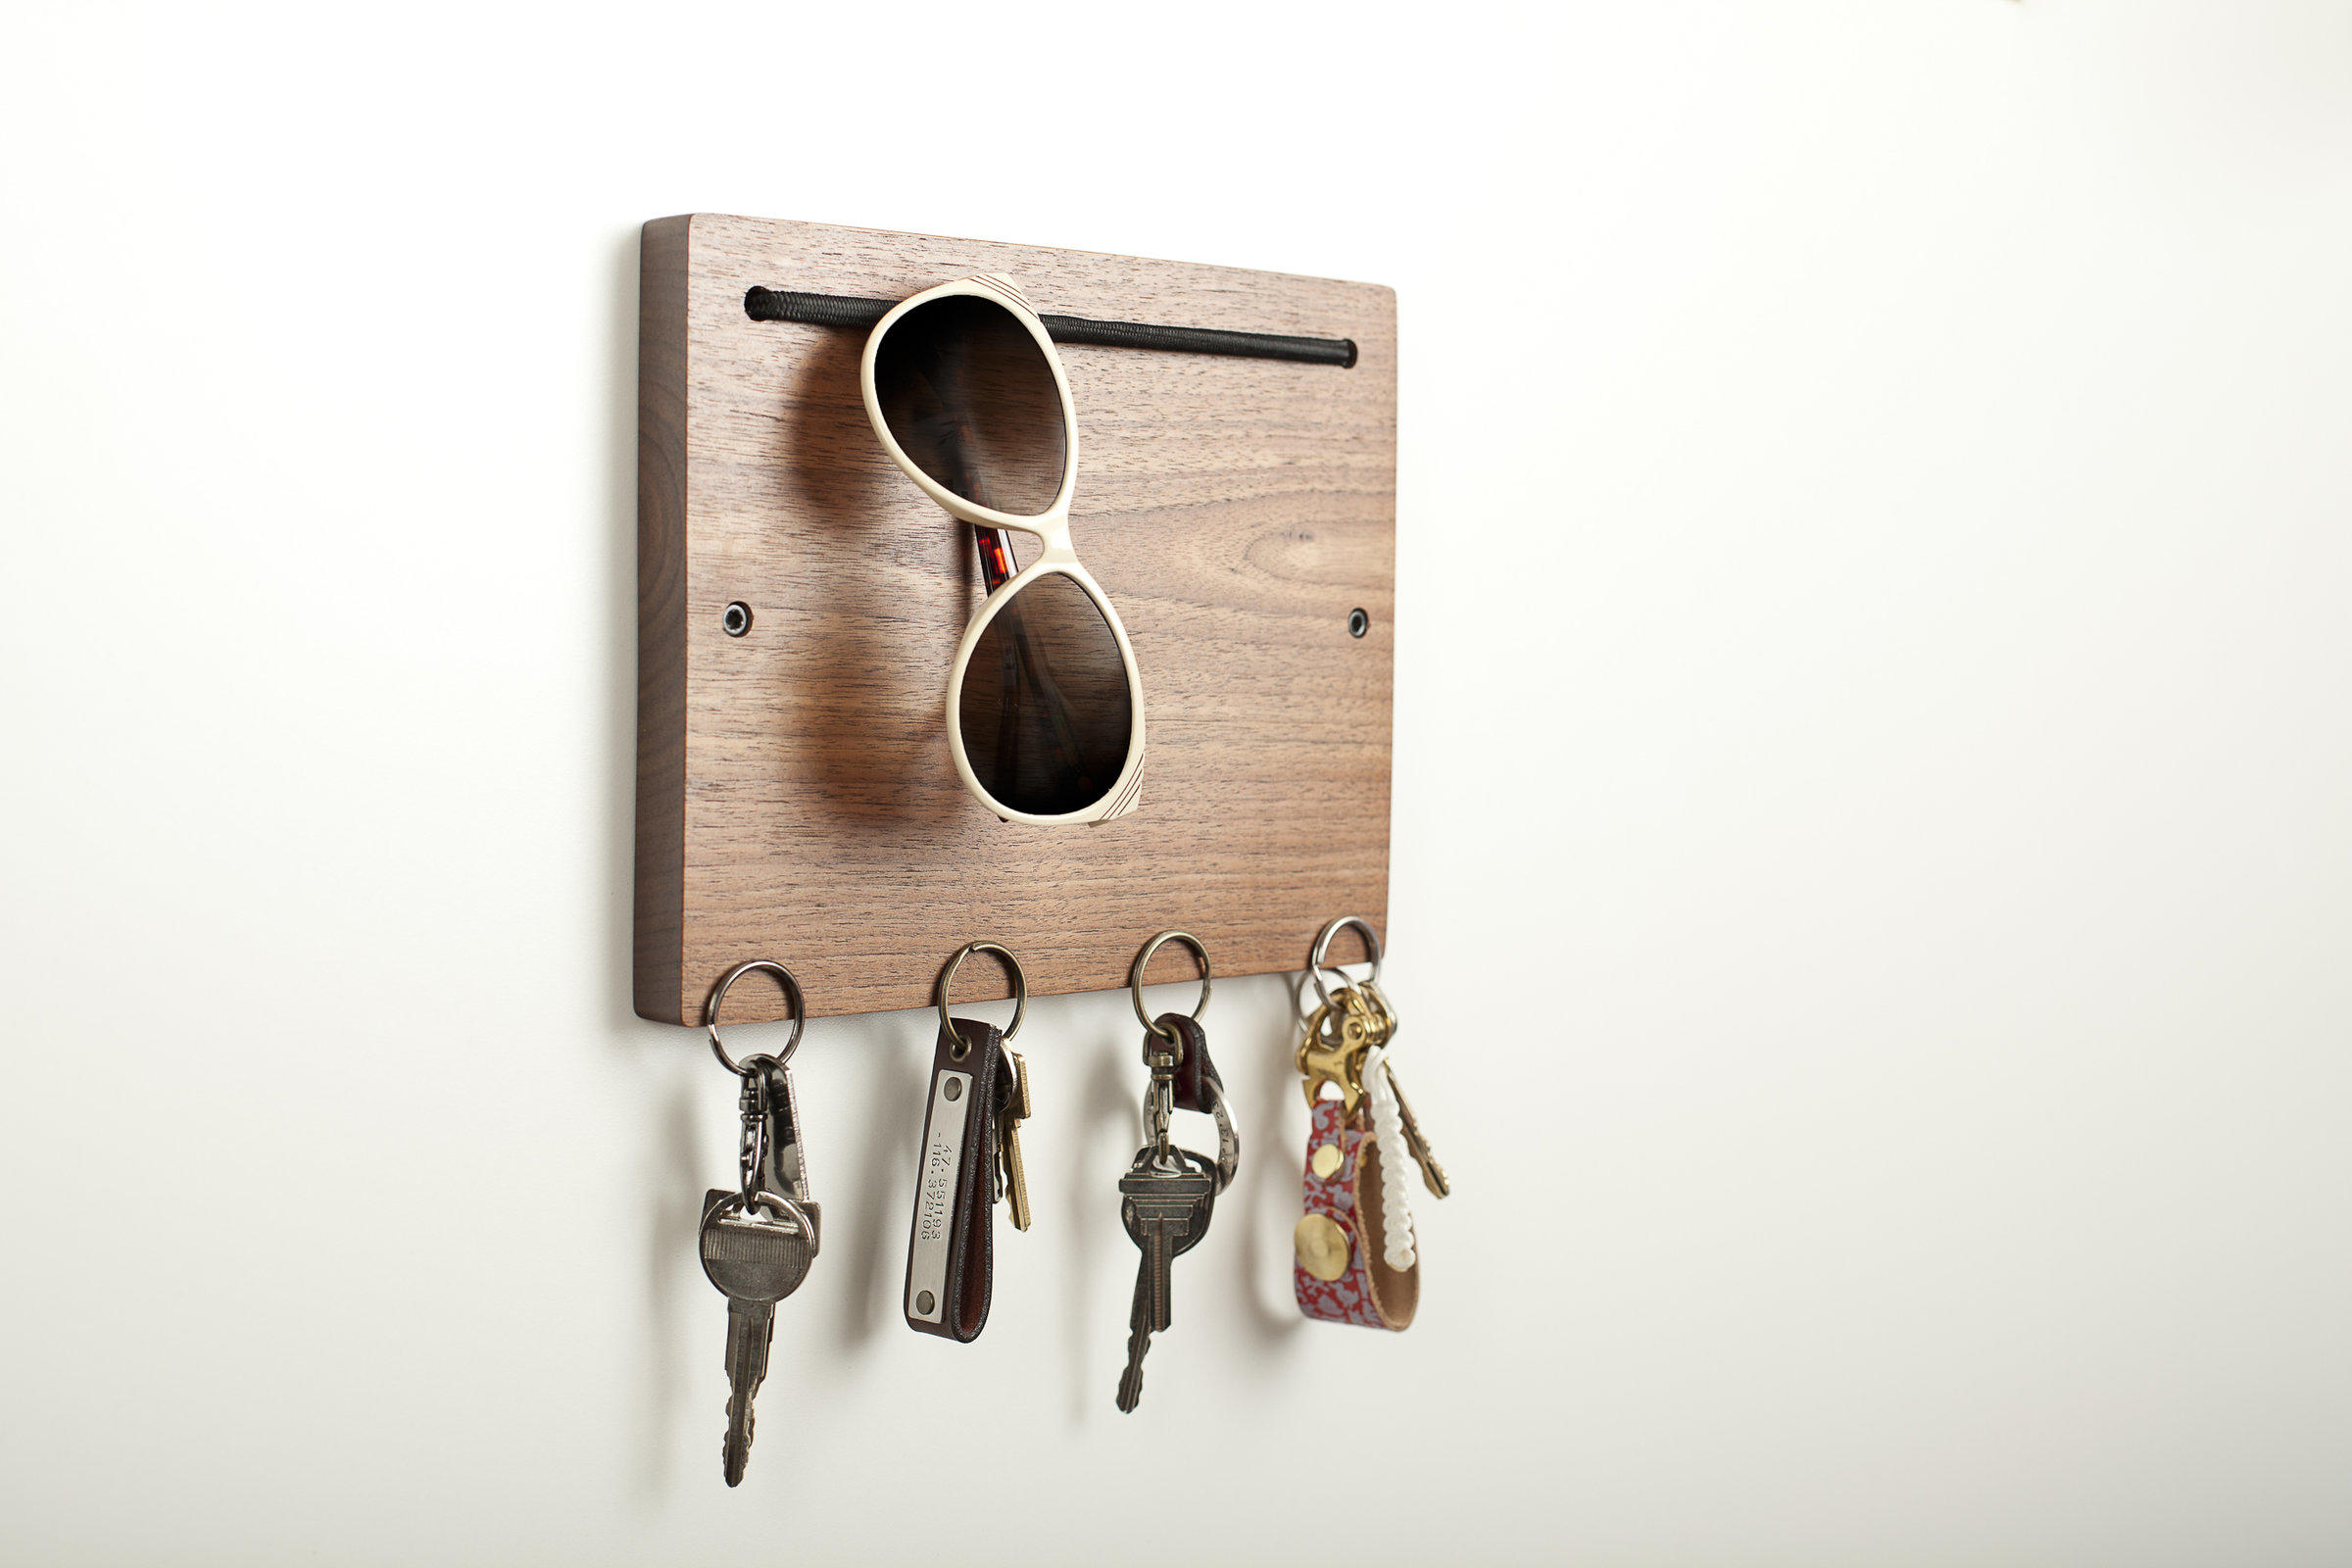 Wood Key Holder For Wall Blokkey Eyewear And Key Holder In Walnut From Artful Home